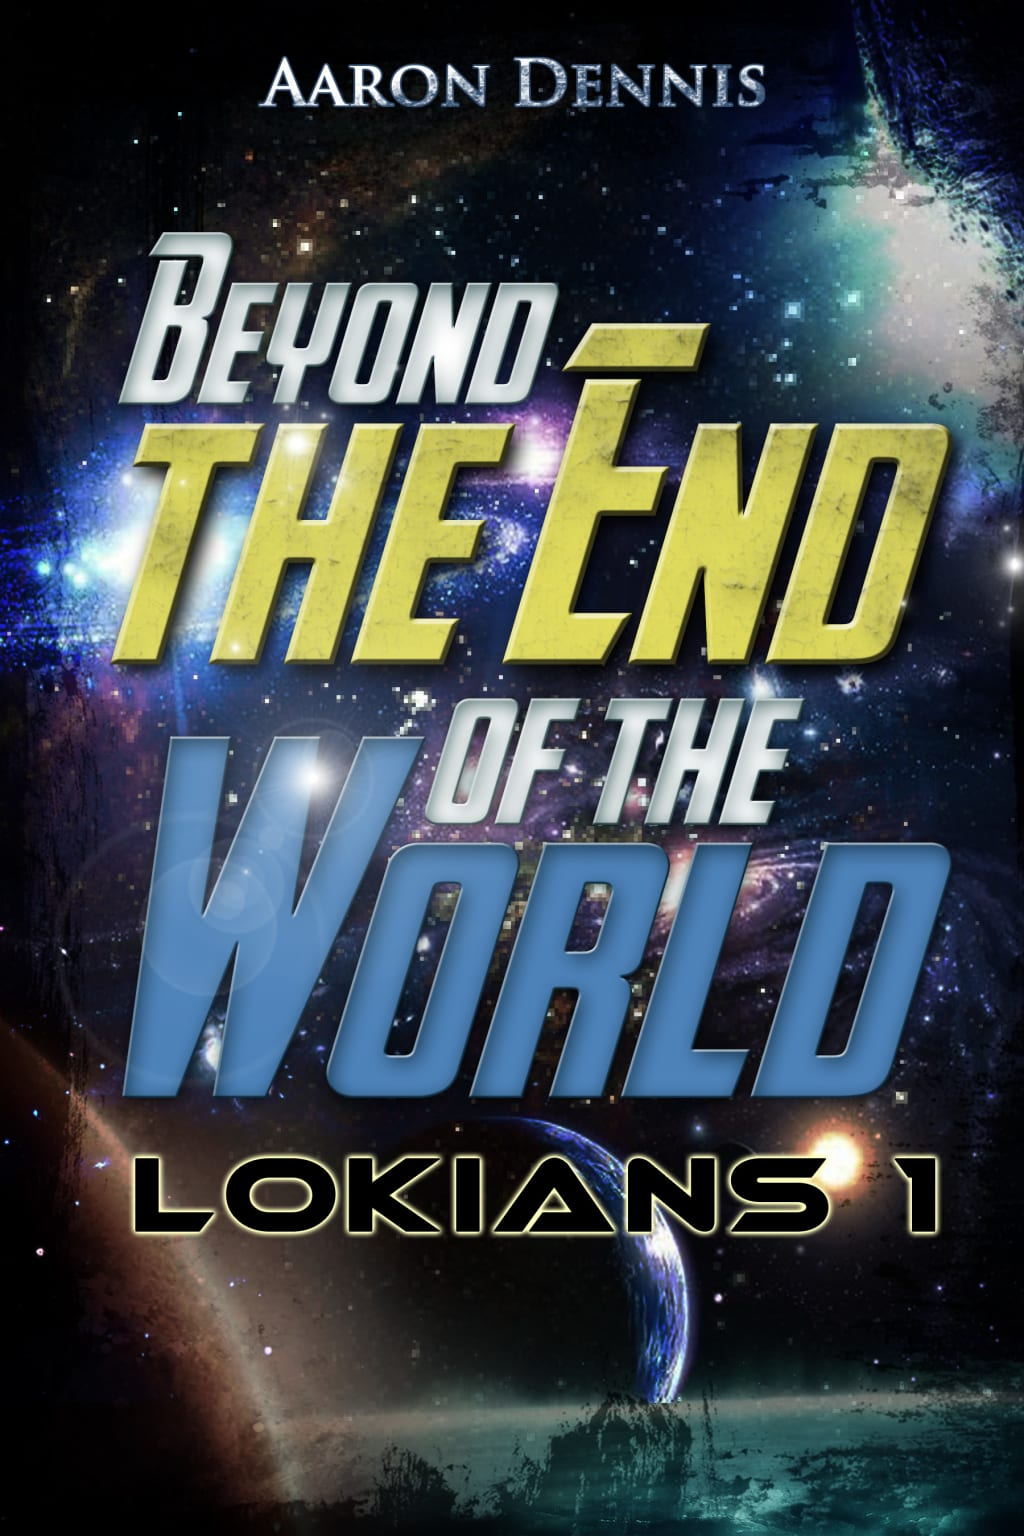 Part 20 of Beyond the End of the World, Lokians 1